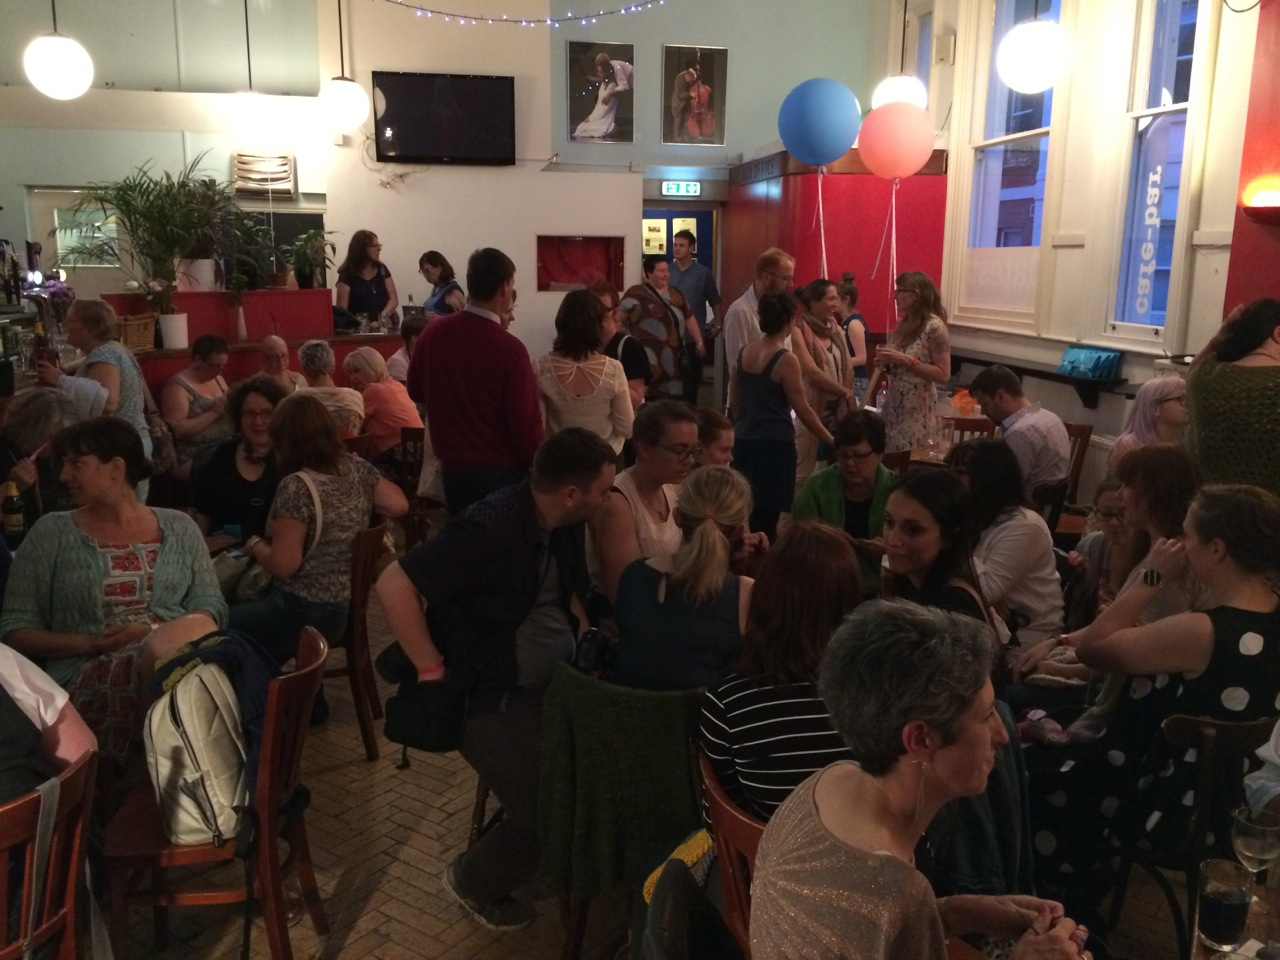 Half of the Seaside Shindig - there was another room in the basement of the bar filled with knitters too!